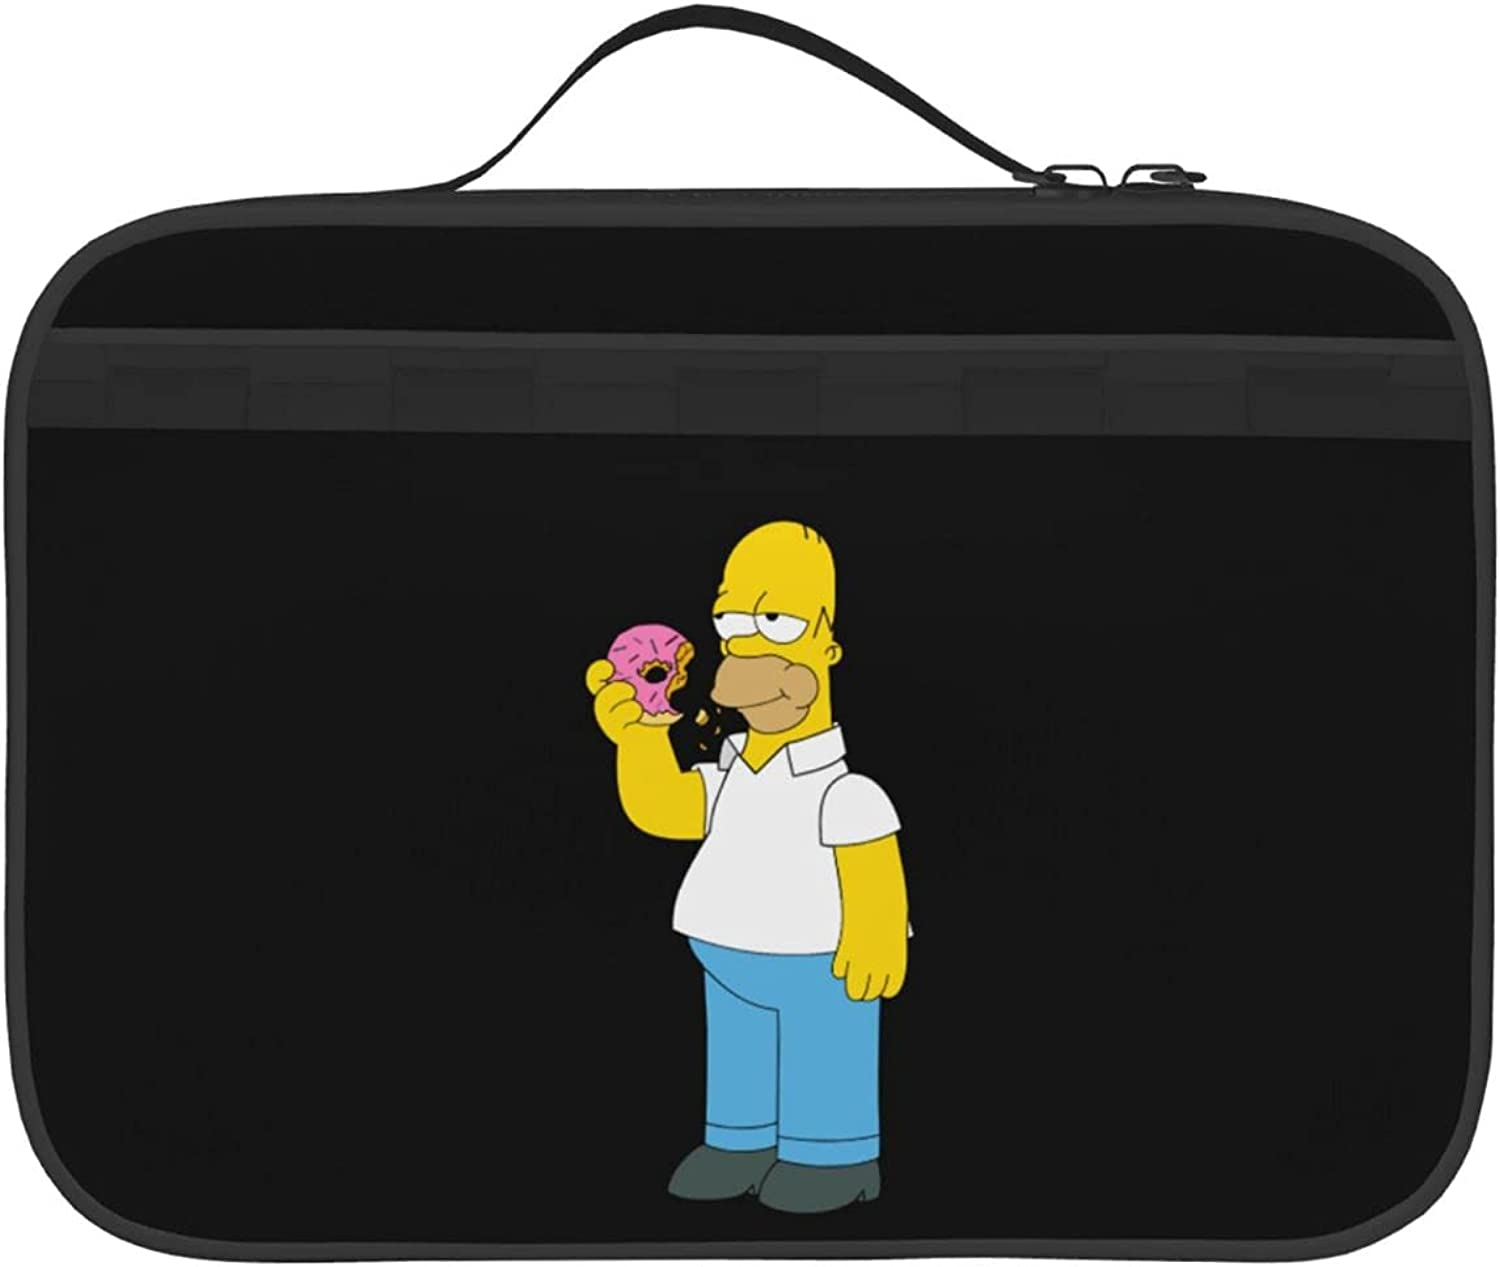 Simpson_Father Two-Side Printed Insulated Cheap sale Bag Limited time for free shipping For Lunch Outdoor